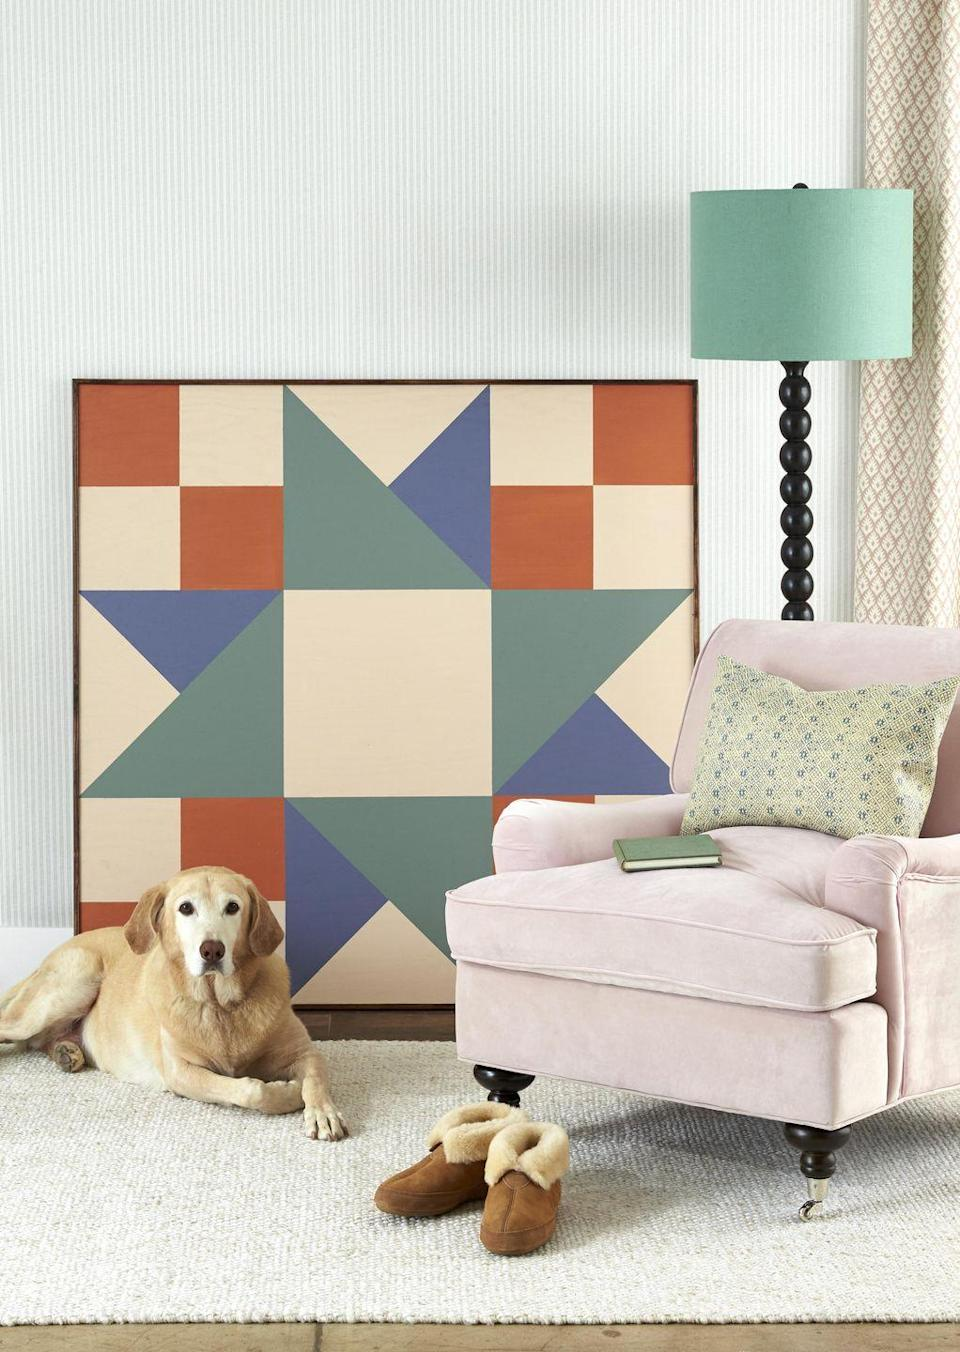 <p>Gus loves the hanging out with the colorful painted quilt square. Simply lean it against the wall for easy installation.</p><p><strong>To make:</strong> A large-scale piece of painted plywood lends graphic punch to any space. First, cut a piece of plywood to desired size<br>(ours is four feet square). Draw a quilt block (here, Twin Star–style) on the wood with pencil, using a ruler or painter's tape for straight lines, then paint with acrylic paint. Nail strips of 1/2-inch trim along<br>the edges to finish. Lean or hang on the wall.<br></p>